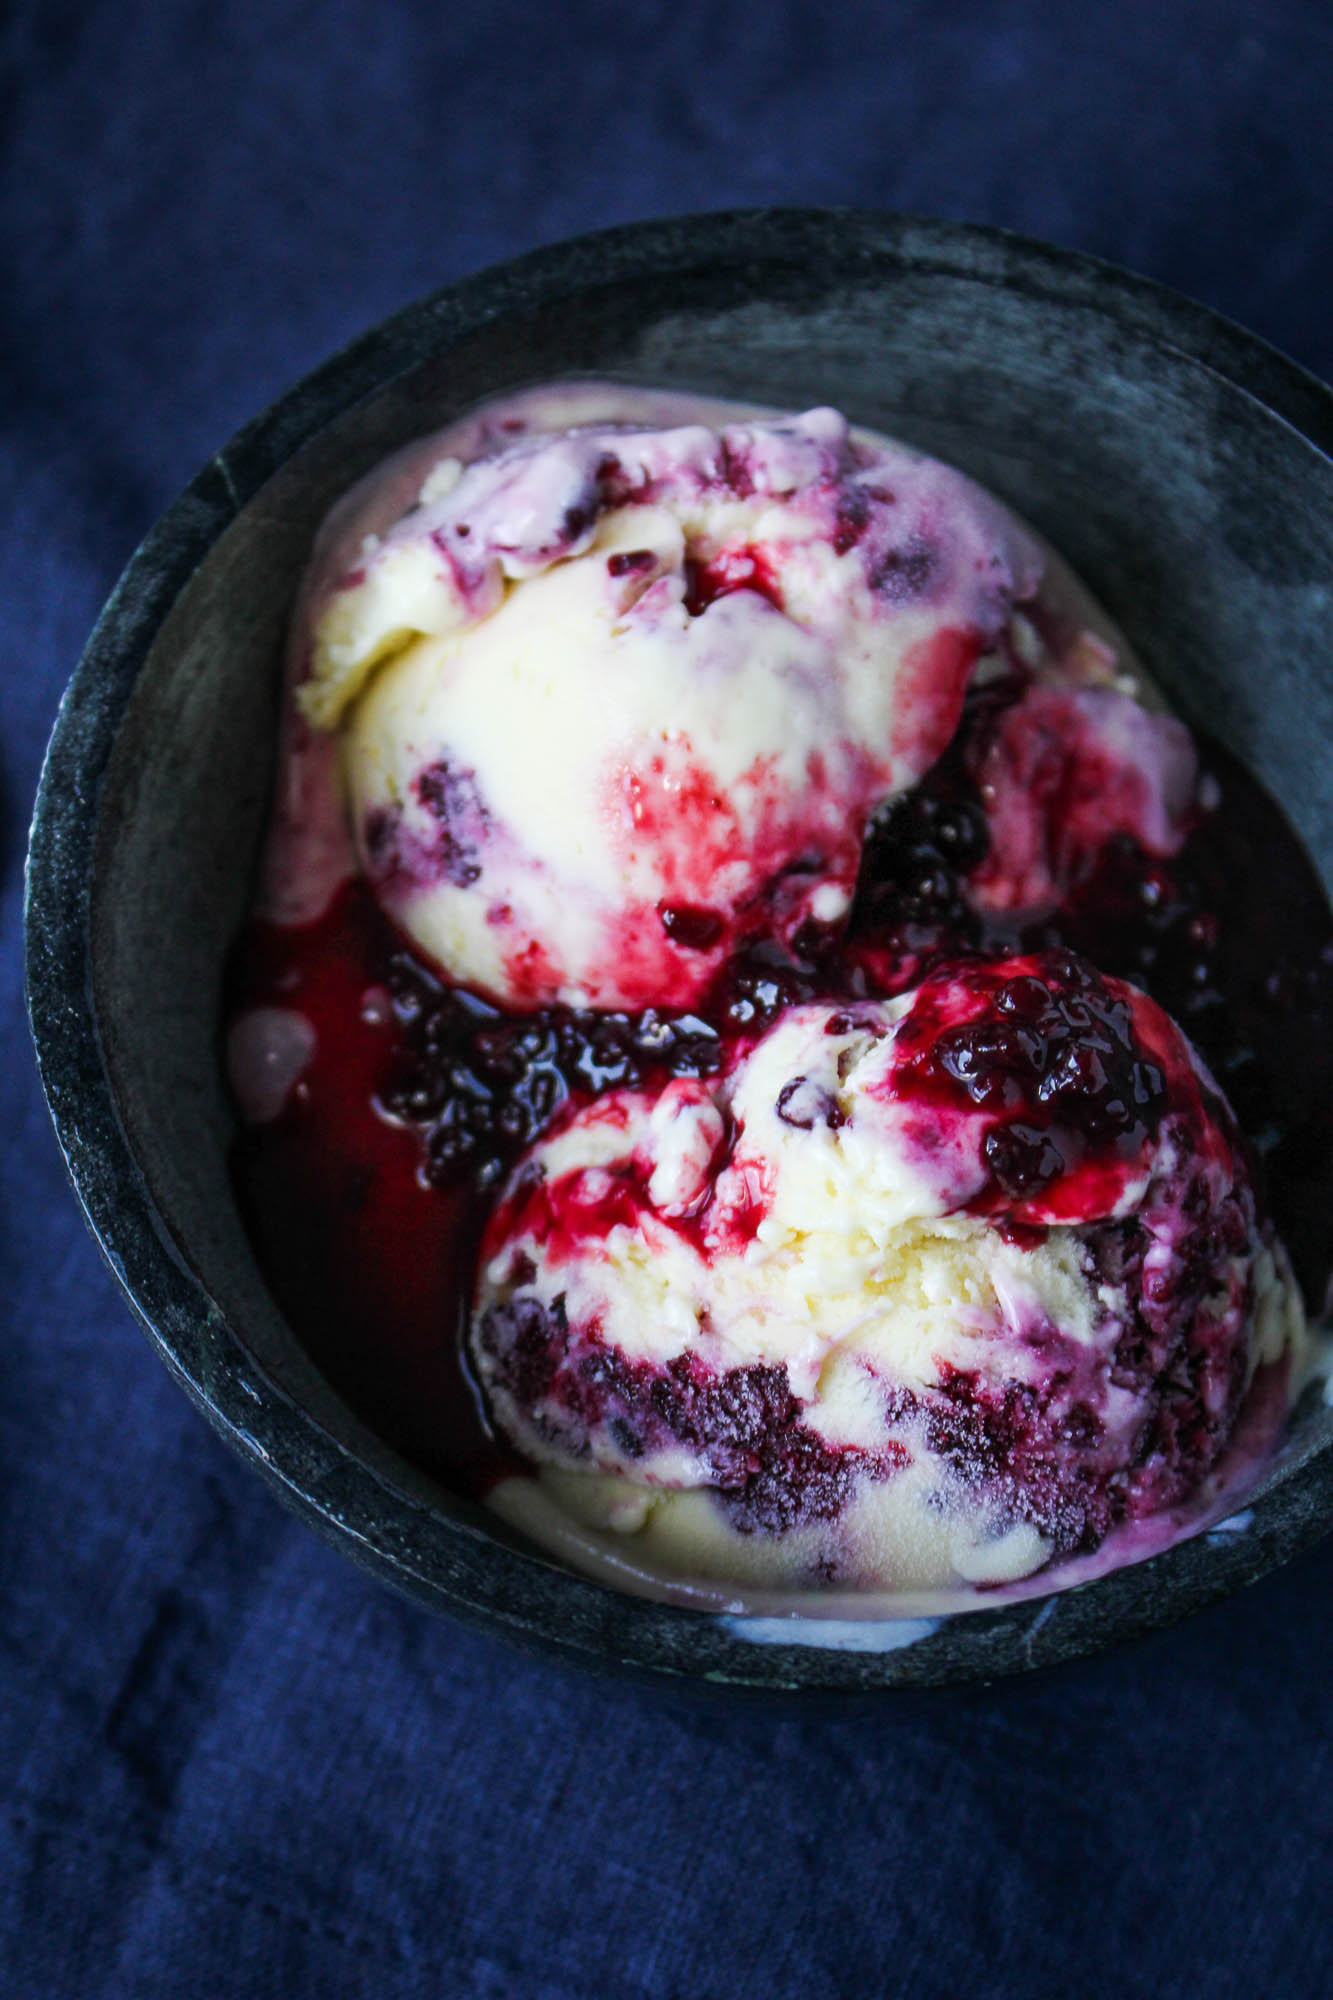 Kitchen Update // Goat Cheese Ice Cream with Blackberry Red Wine Swirl